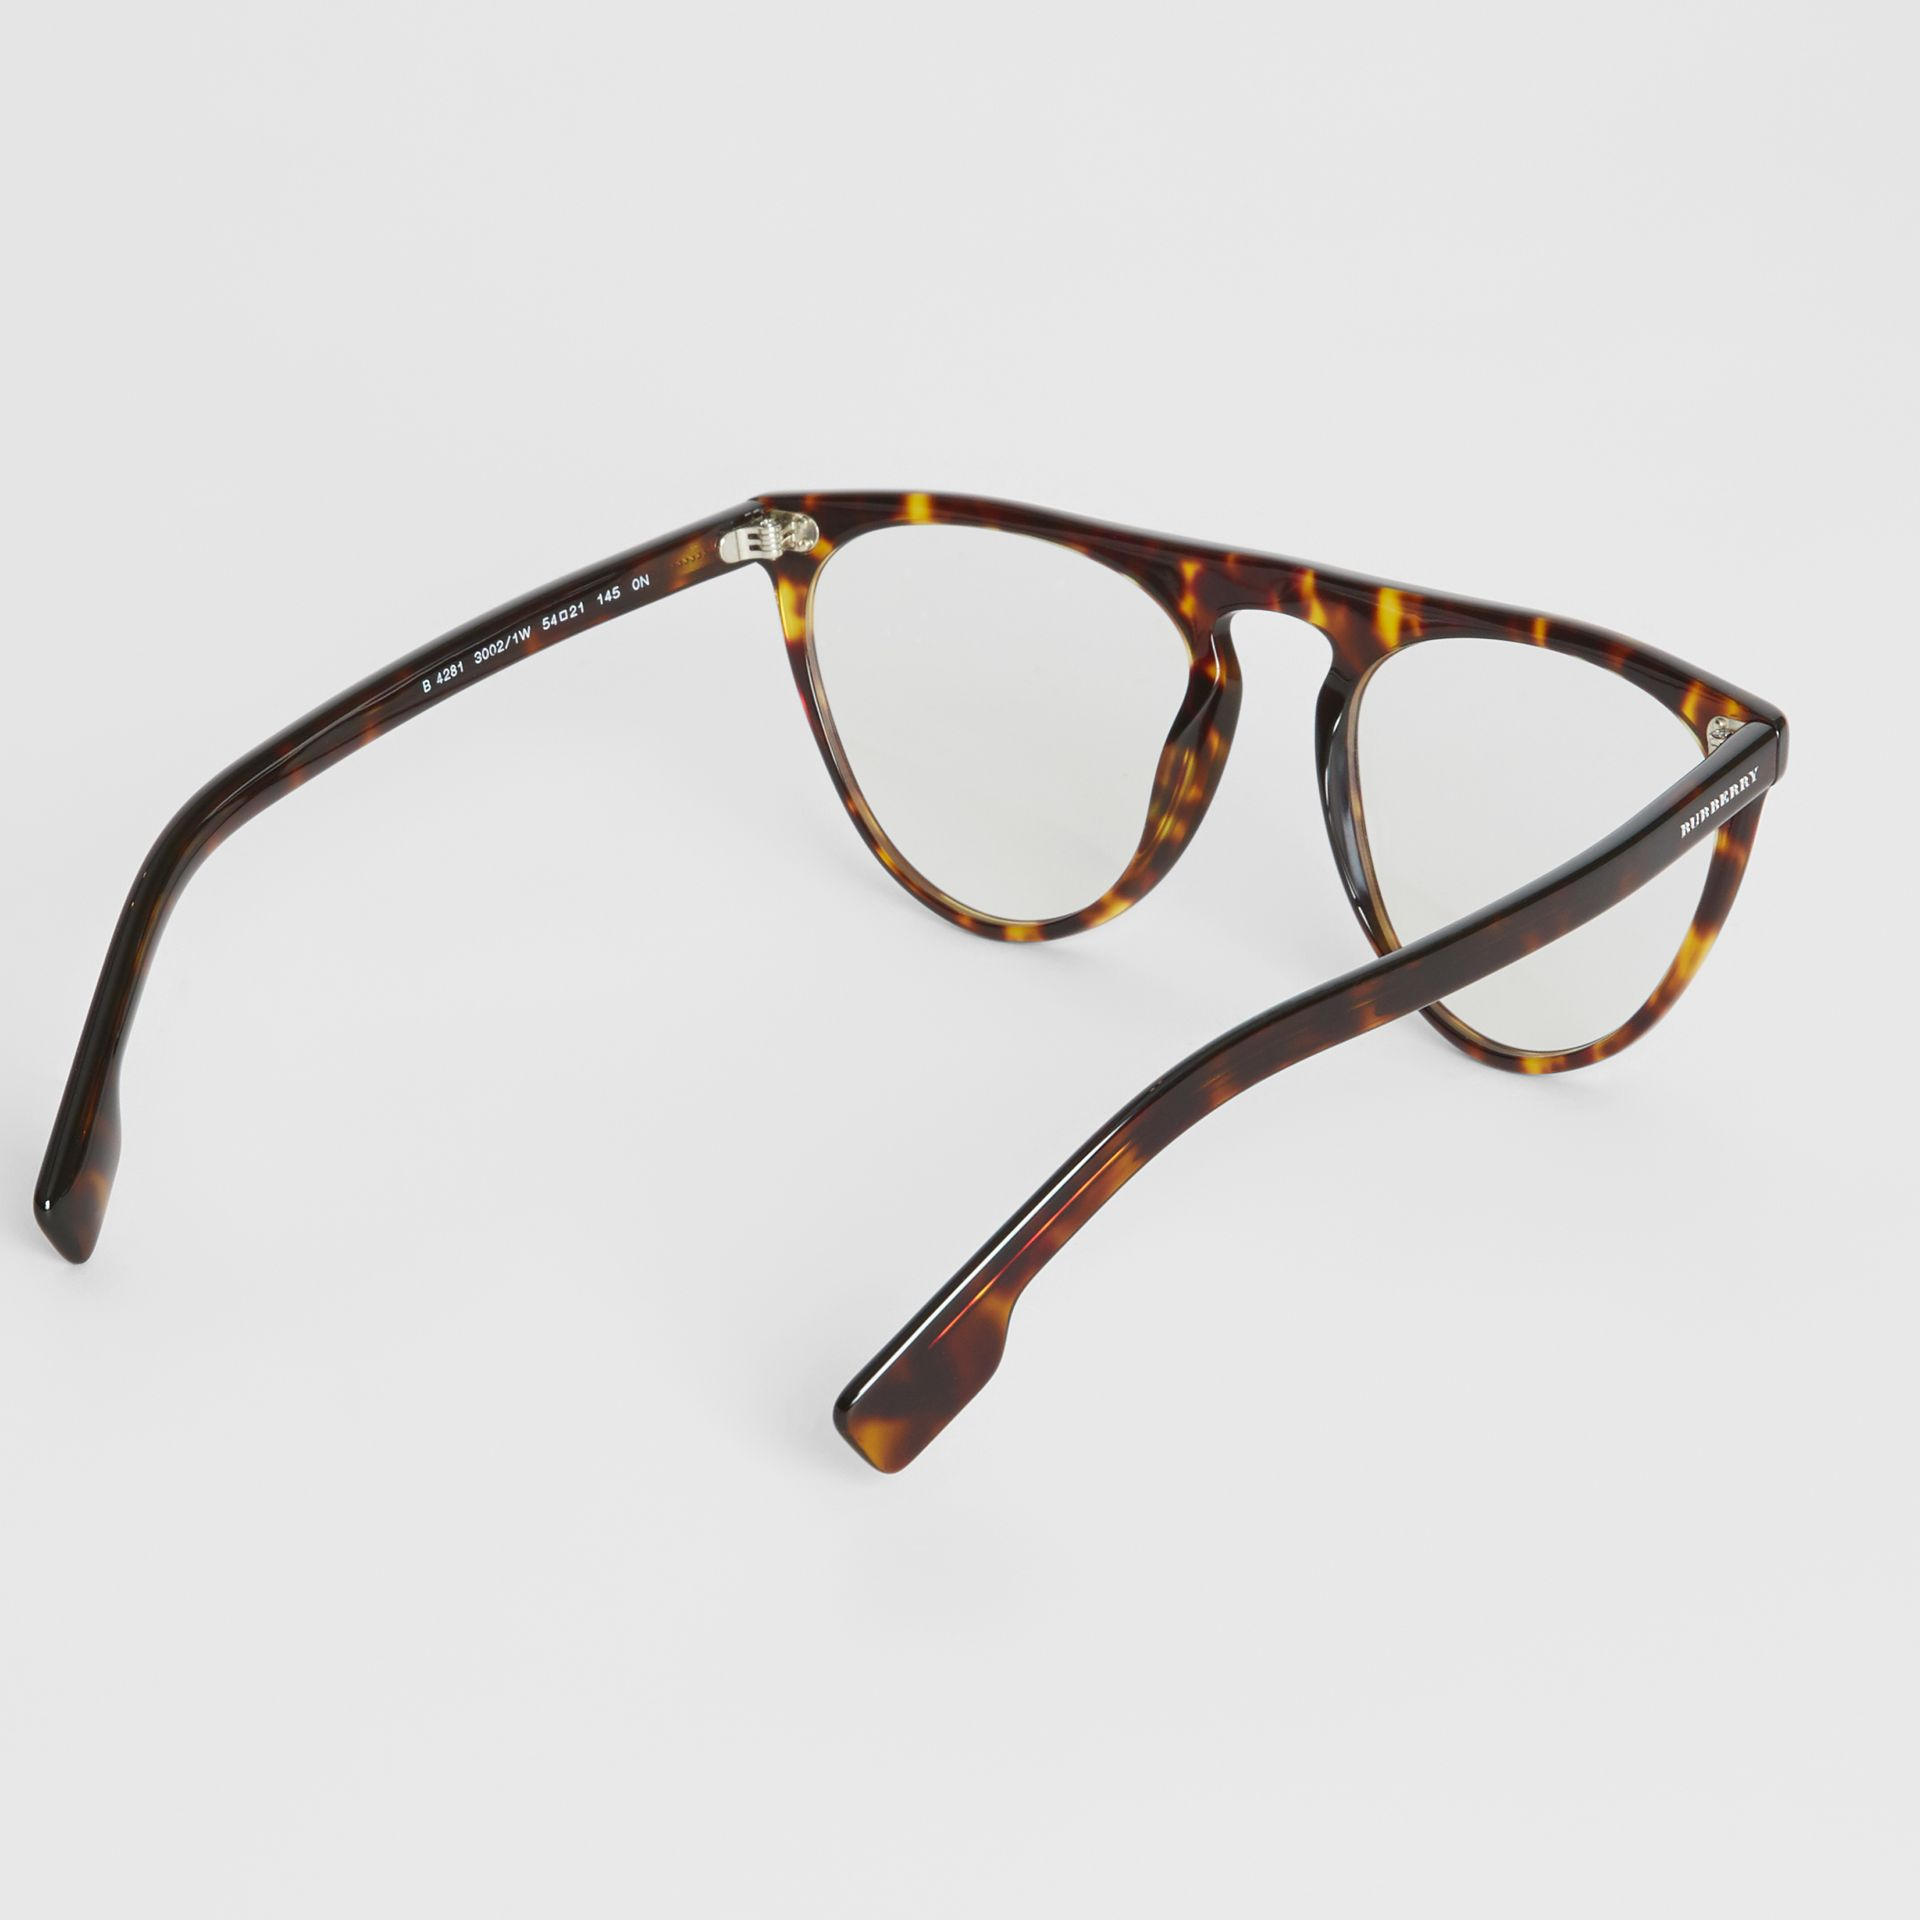 Keyhole D-shaped Optical Frames in Tortoise Shell - Men | Burberry Canada - gallery image 4